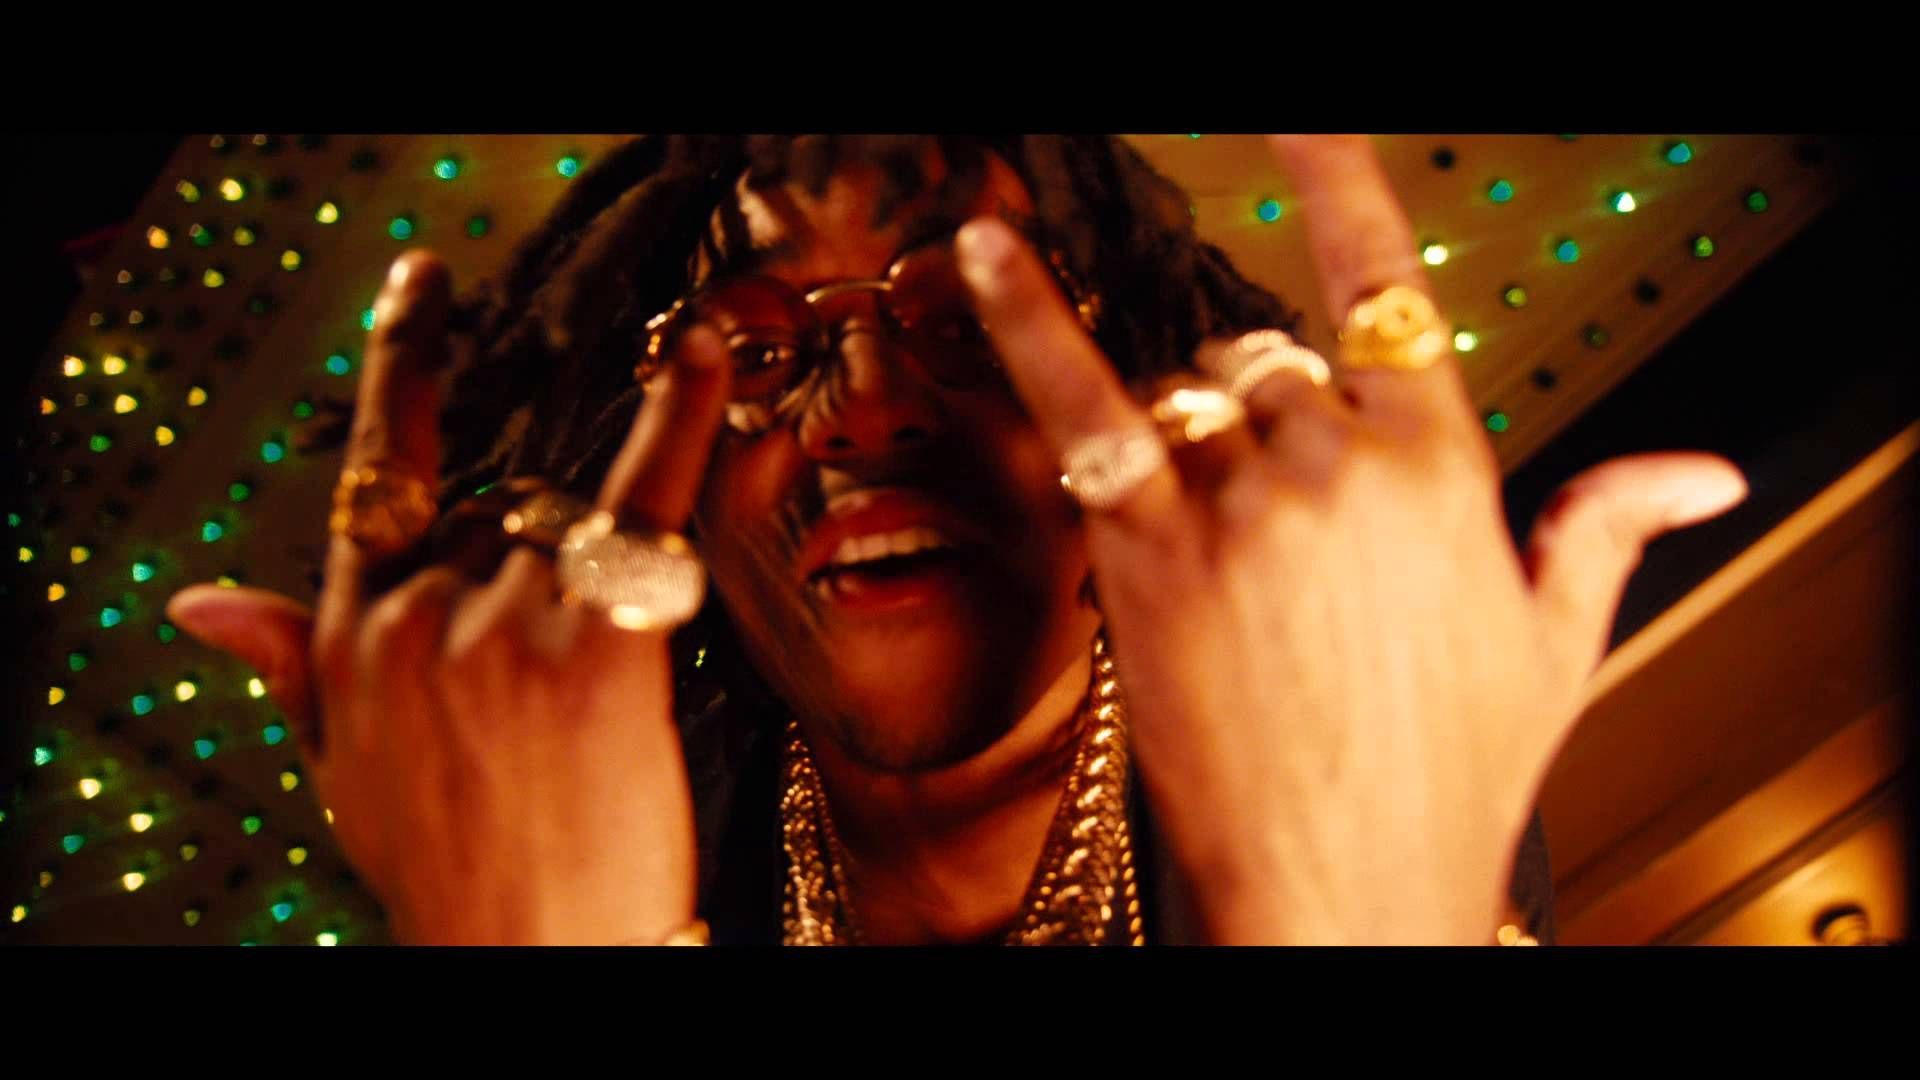 Migos Fight Night Official Music Video With Images Migos